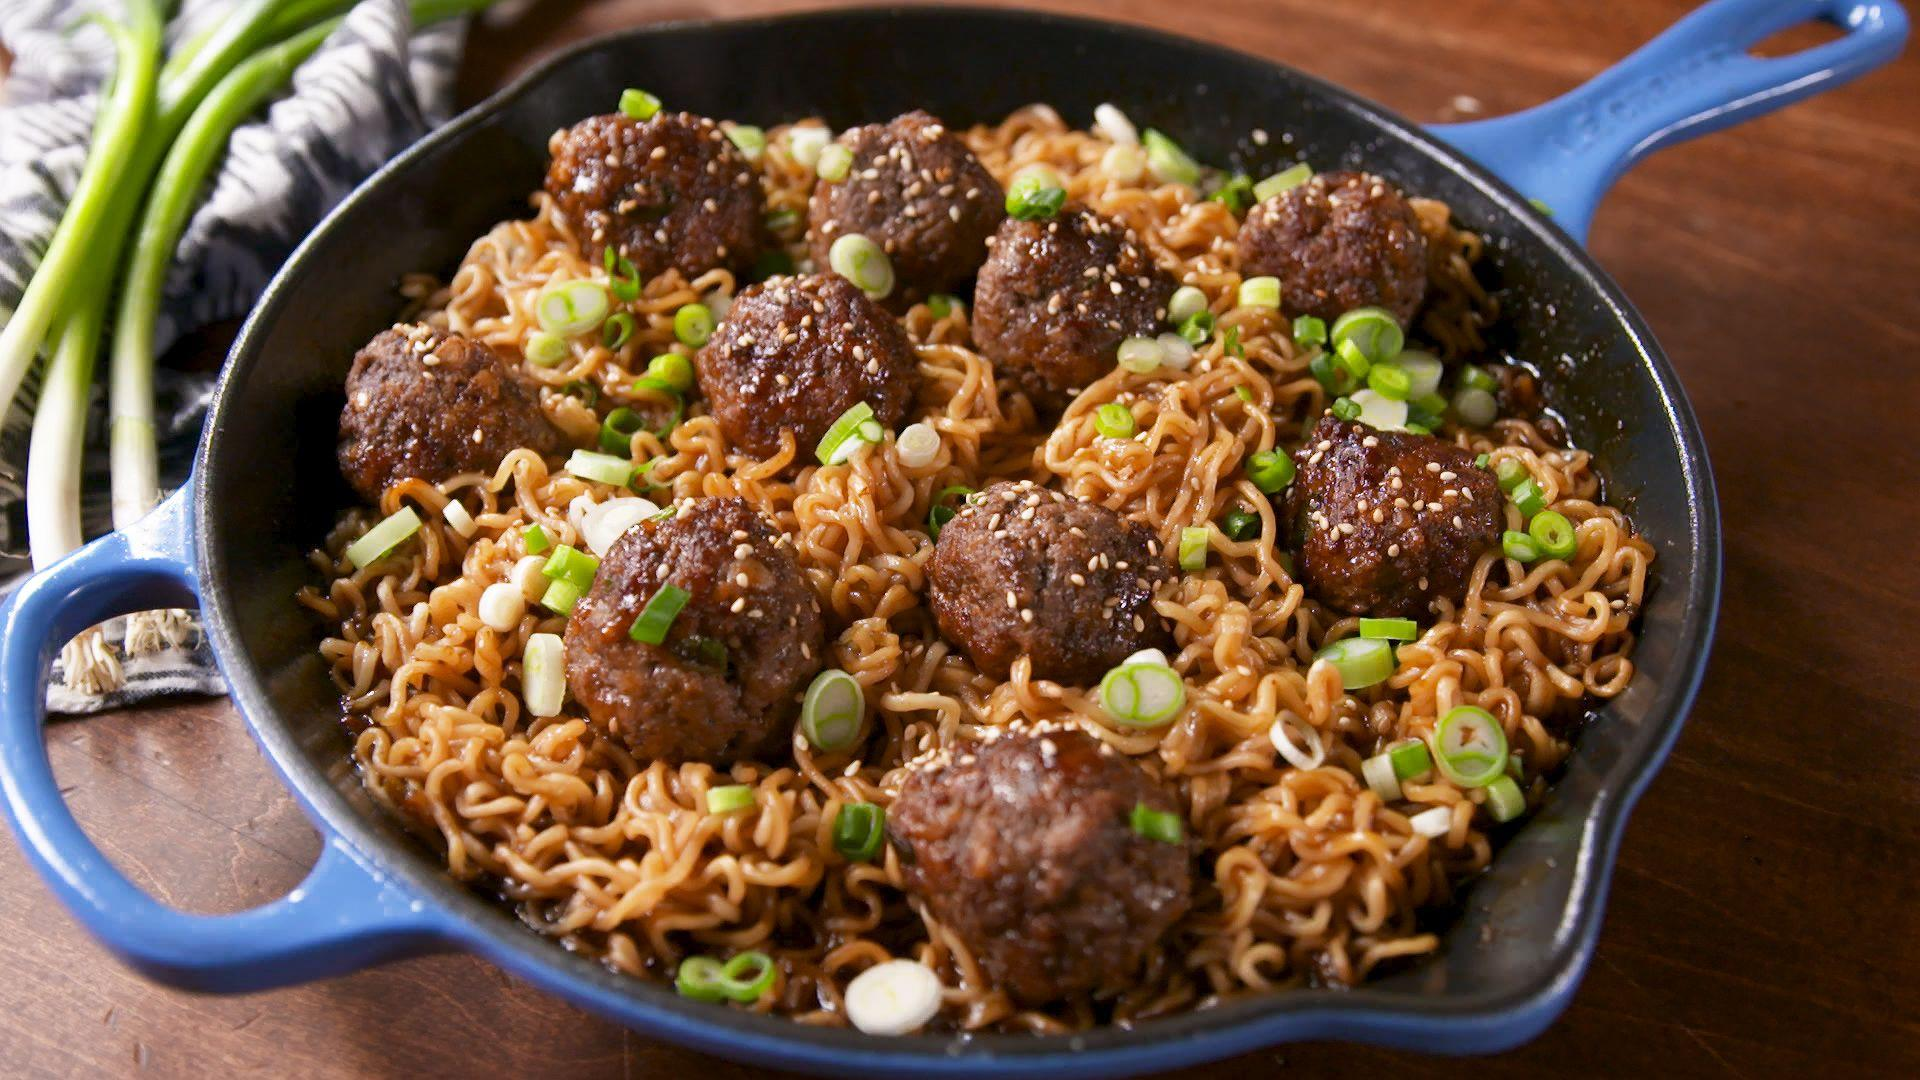 "<p><span>Knowing how to use chopsticks is not a pre-requisite for eating these.</span></p><p><span>Want more better-than-takeout recipes? Try our </span><a href=""/cooking/g1995/asian-noodles/"" data-ylk=""slk:amazing Asian noodles"" class=""link rapid-noclick-resp"">amazing Asian noodles</a><span>.</span></p>"